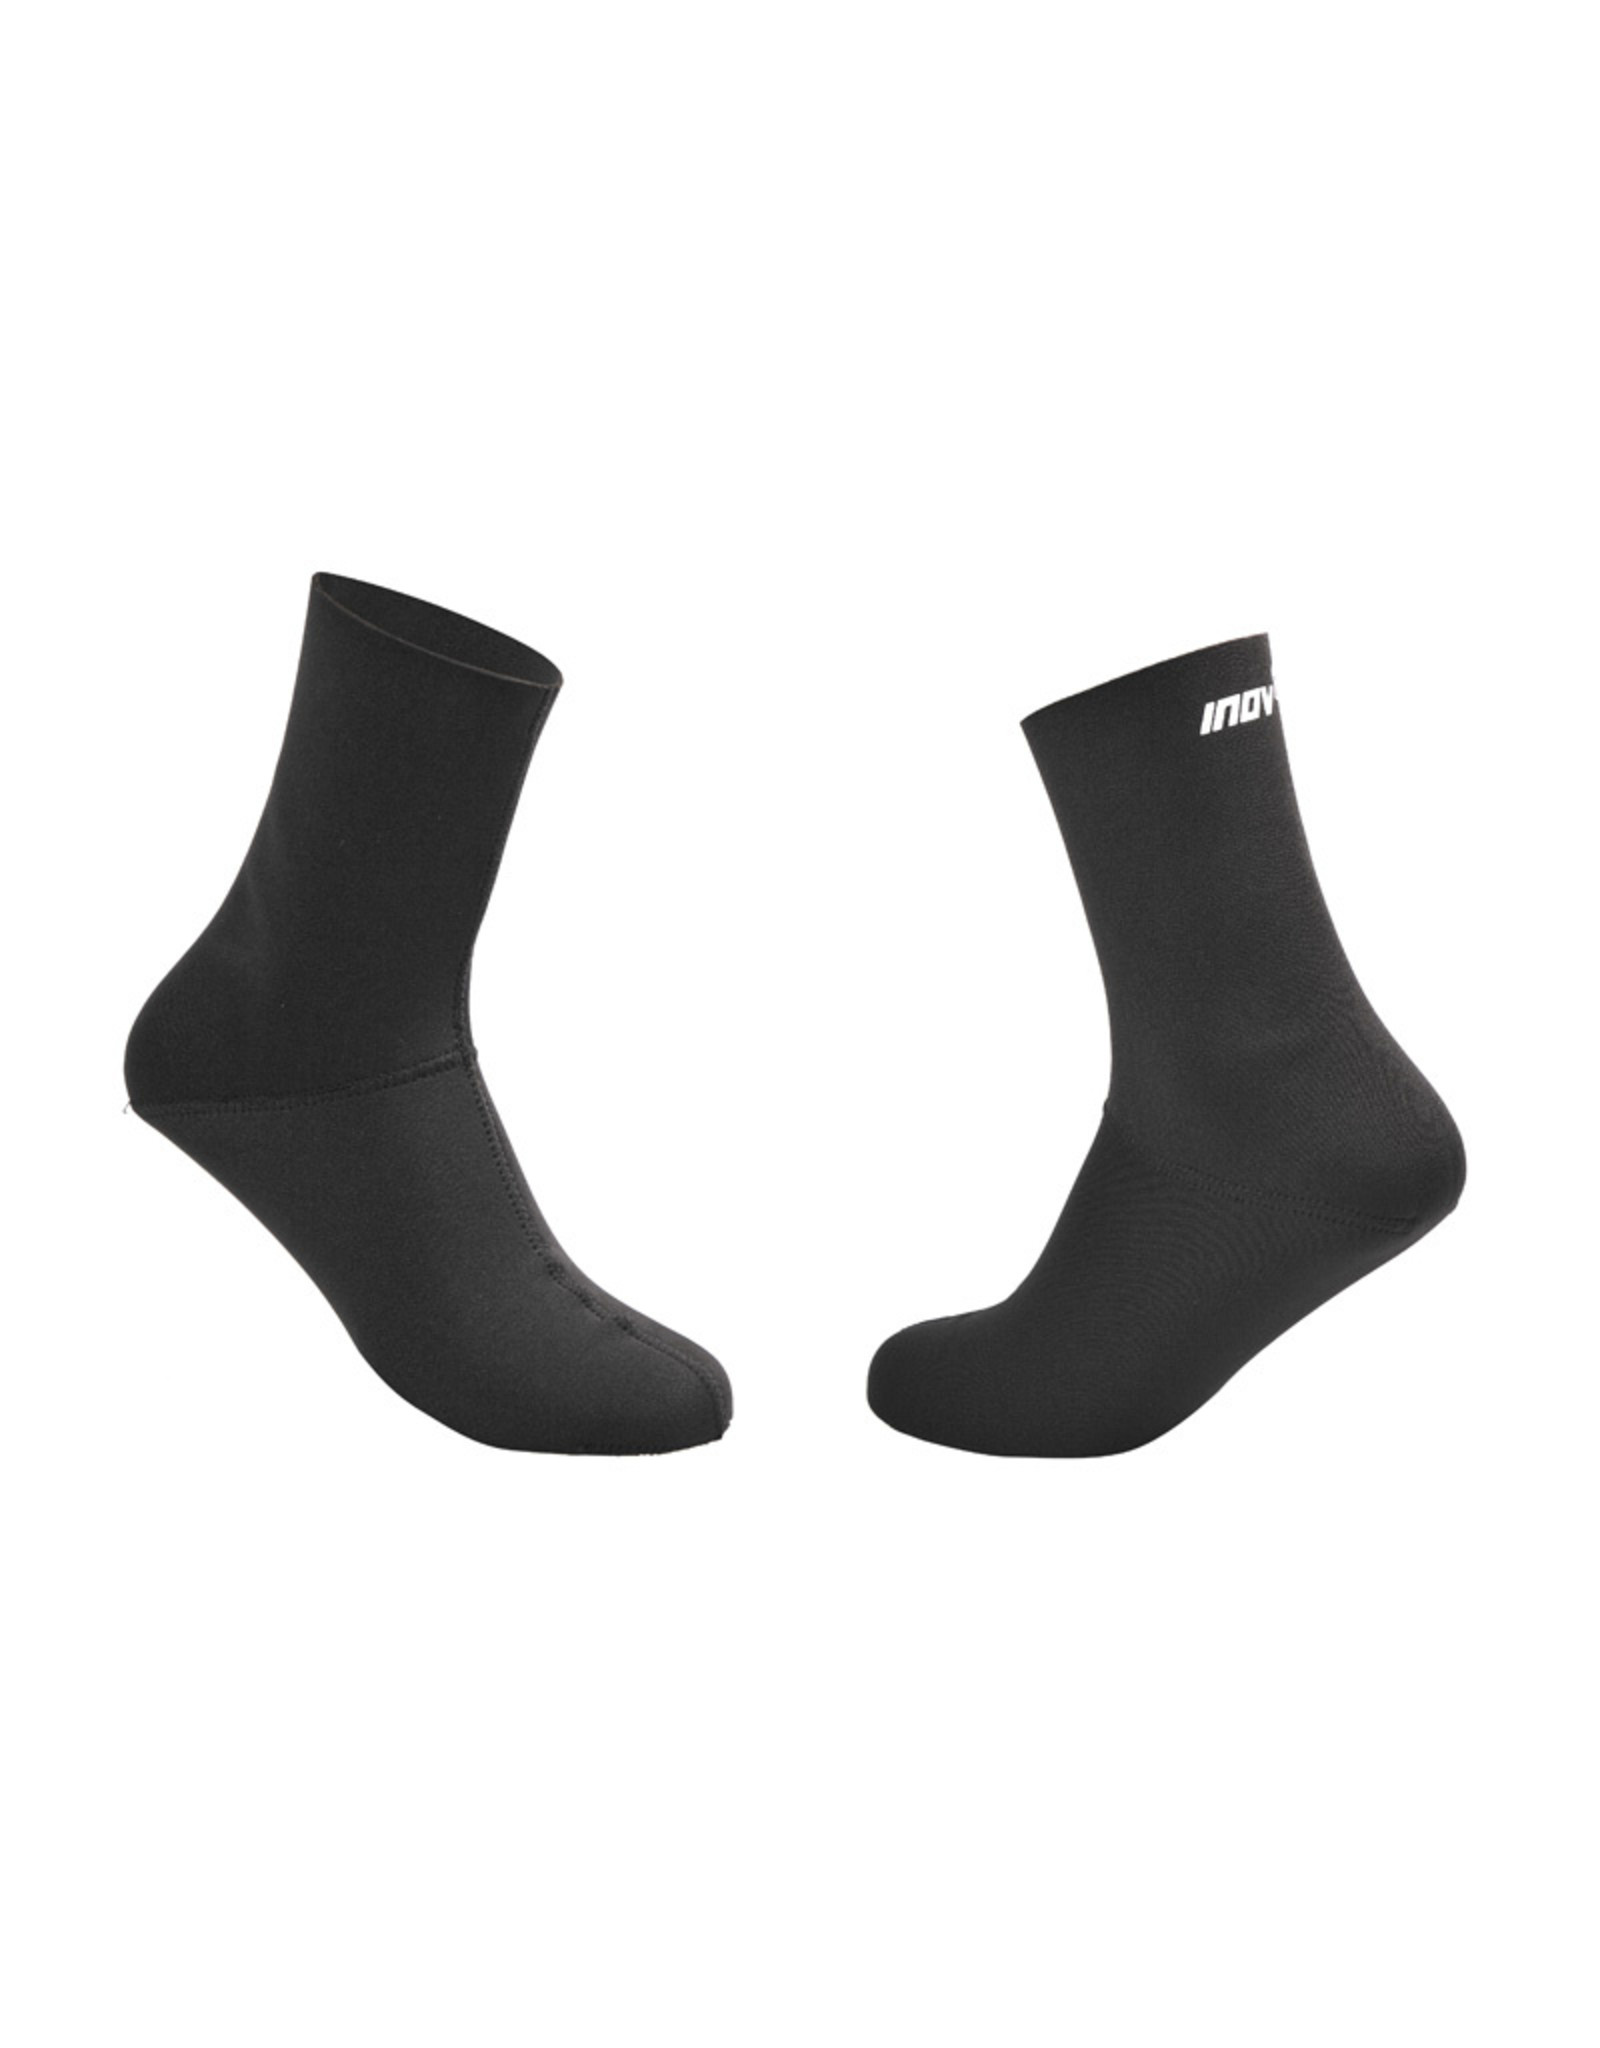 Inov-8 Extreme Thermo Sock Chaussettes D'Hiver Haute - Noir